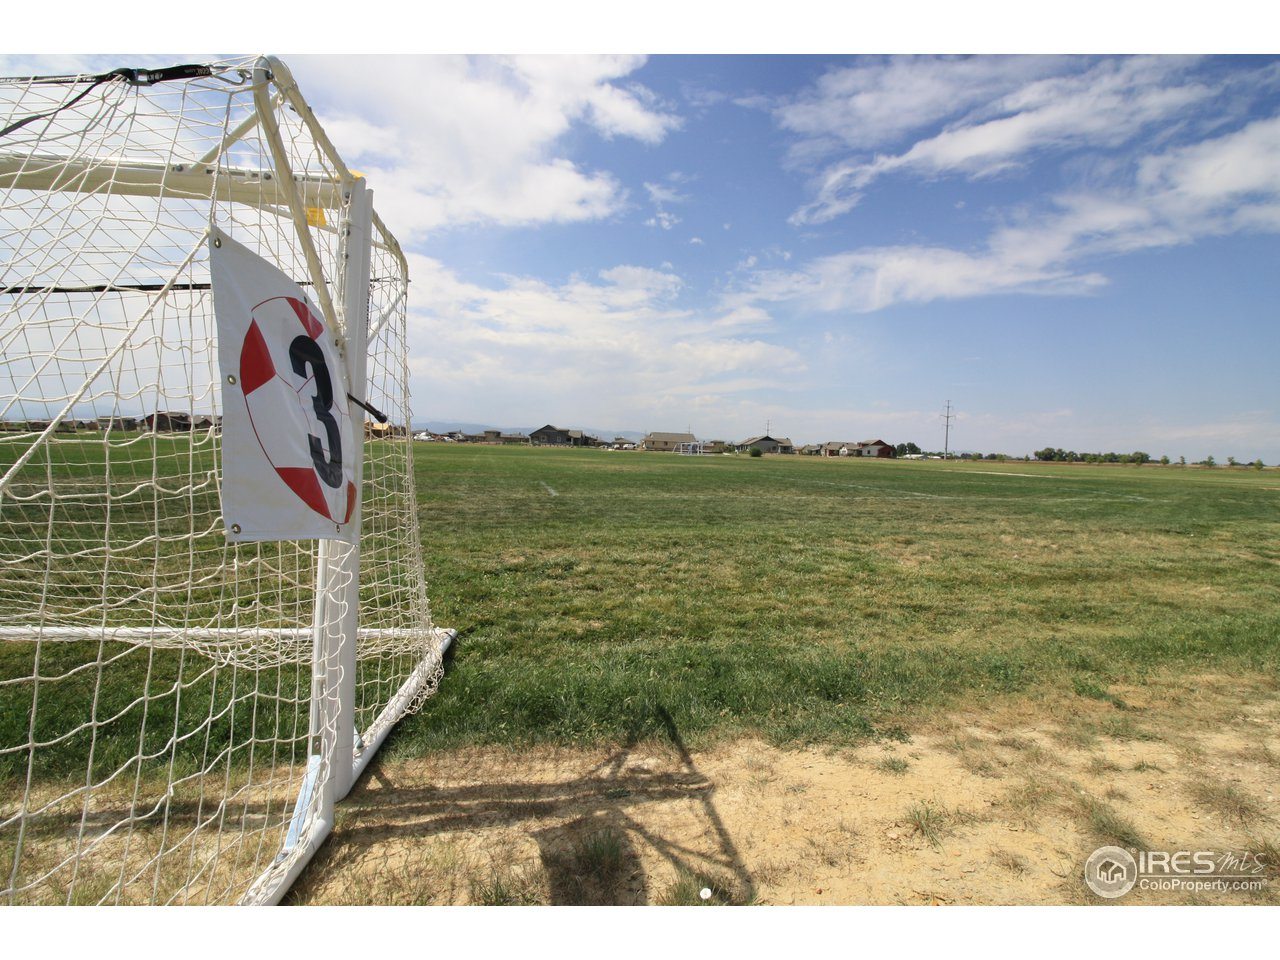 Soccer fields adjacent to Wildwing property